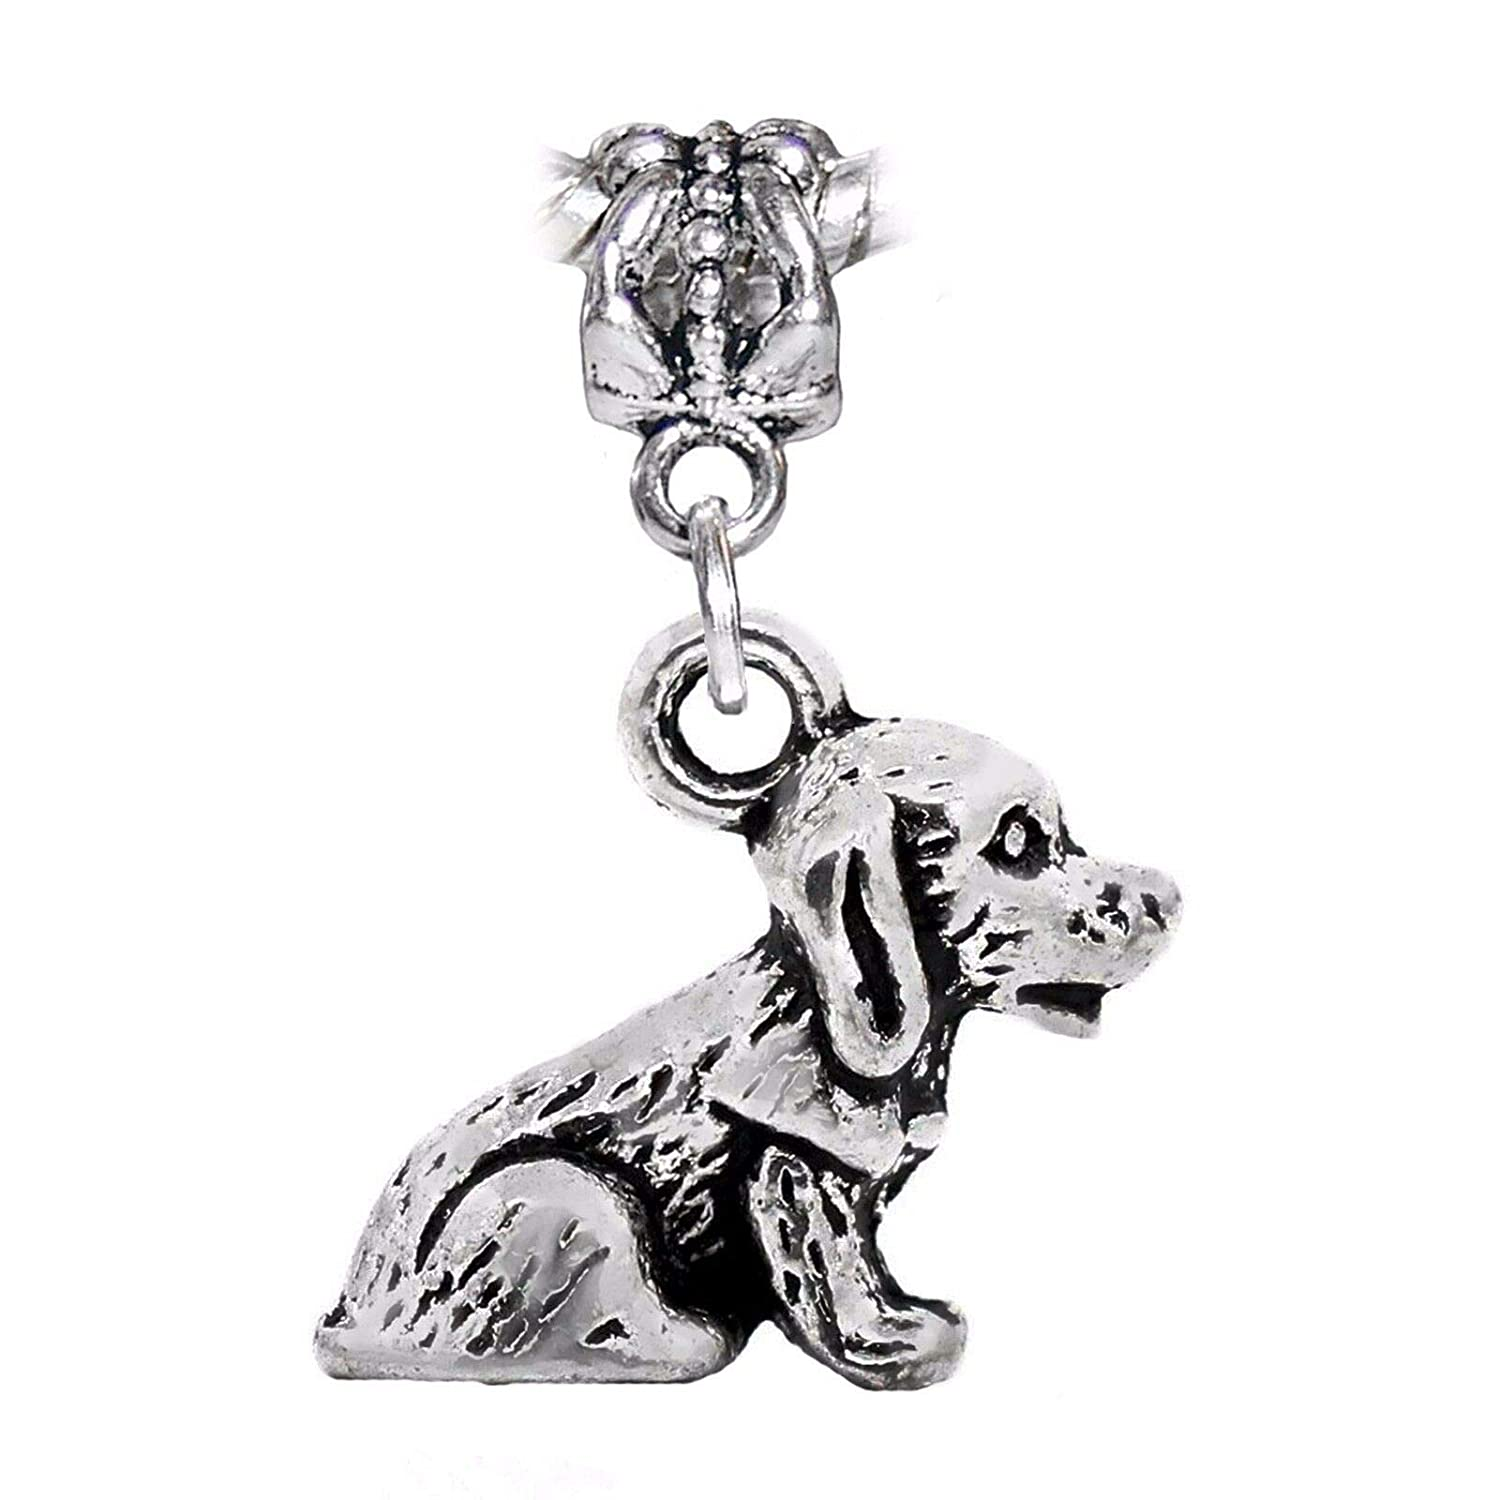 Dog Puppy Doggy Pet Animal 3D Dangle Charm for Silver European Bead Bracelets Fashion Jewelry for Women Man